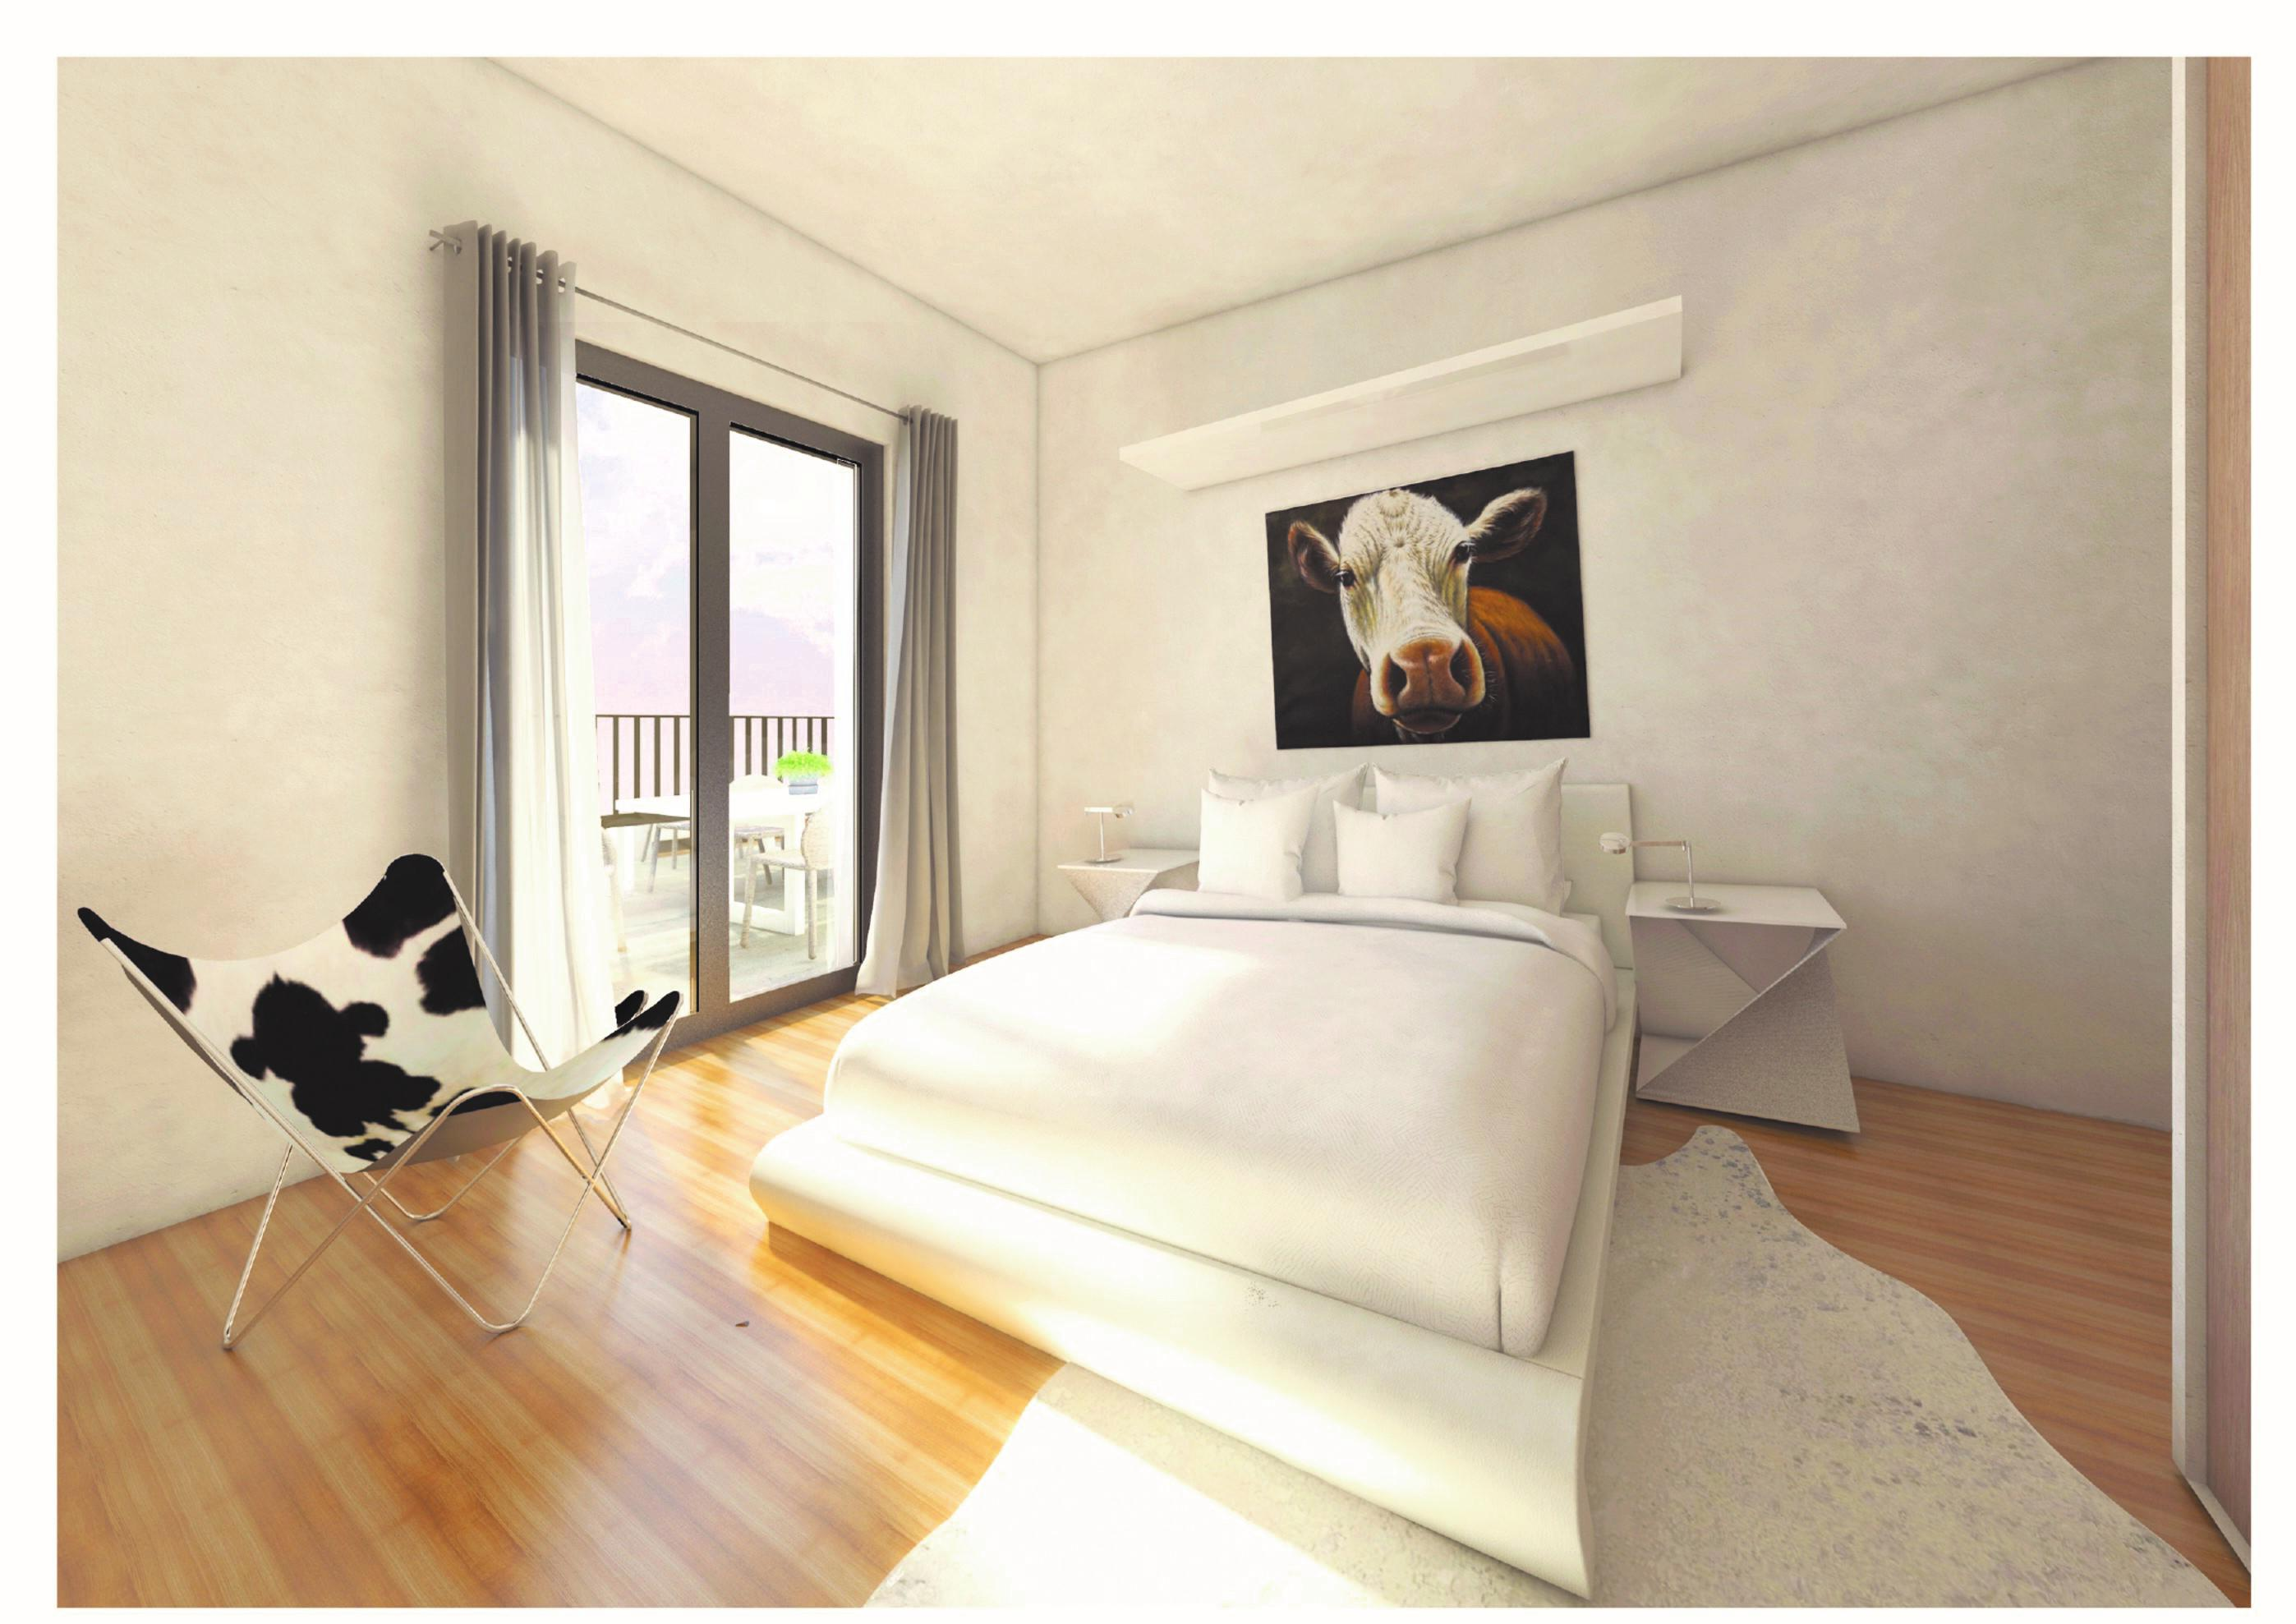 220653 Penthouse for sale in Sarrià-Sant Gervasi, Sant Gervasi-Galvany 25